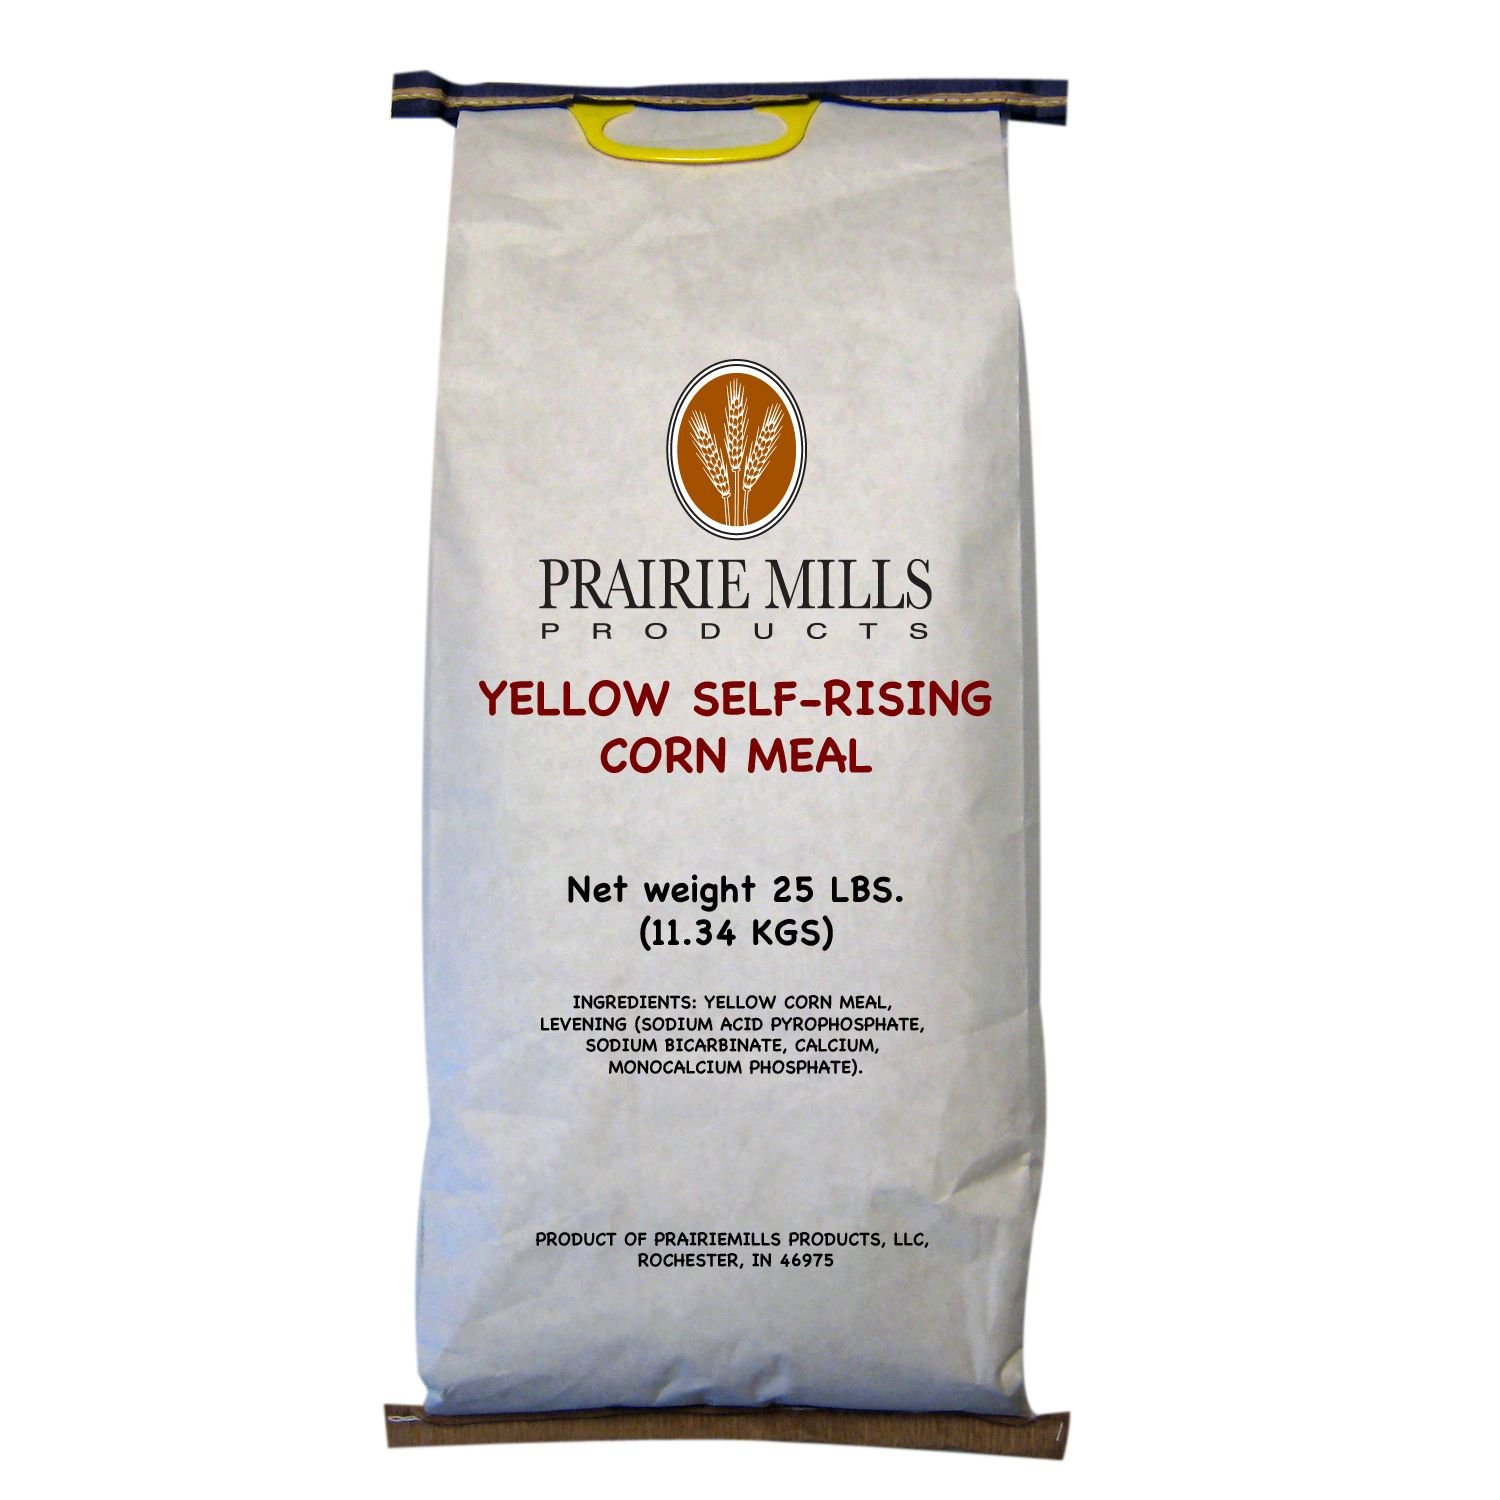 Prairie Mills Self-rising Yellow Corn Meal - 25 Lb. Bag by Prairie Mills